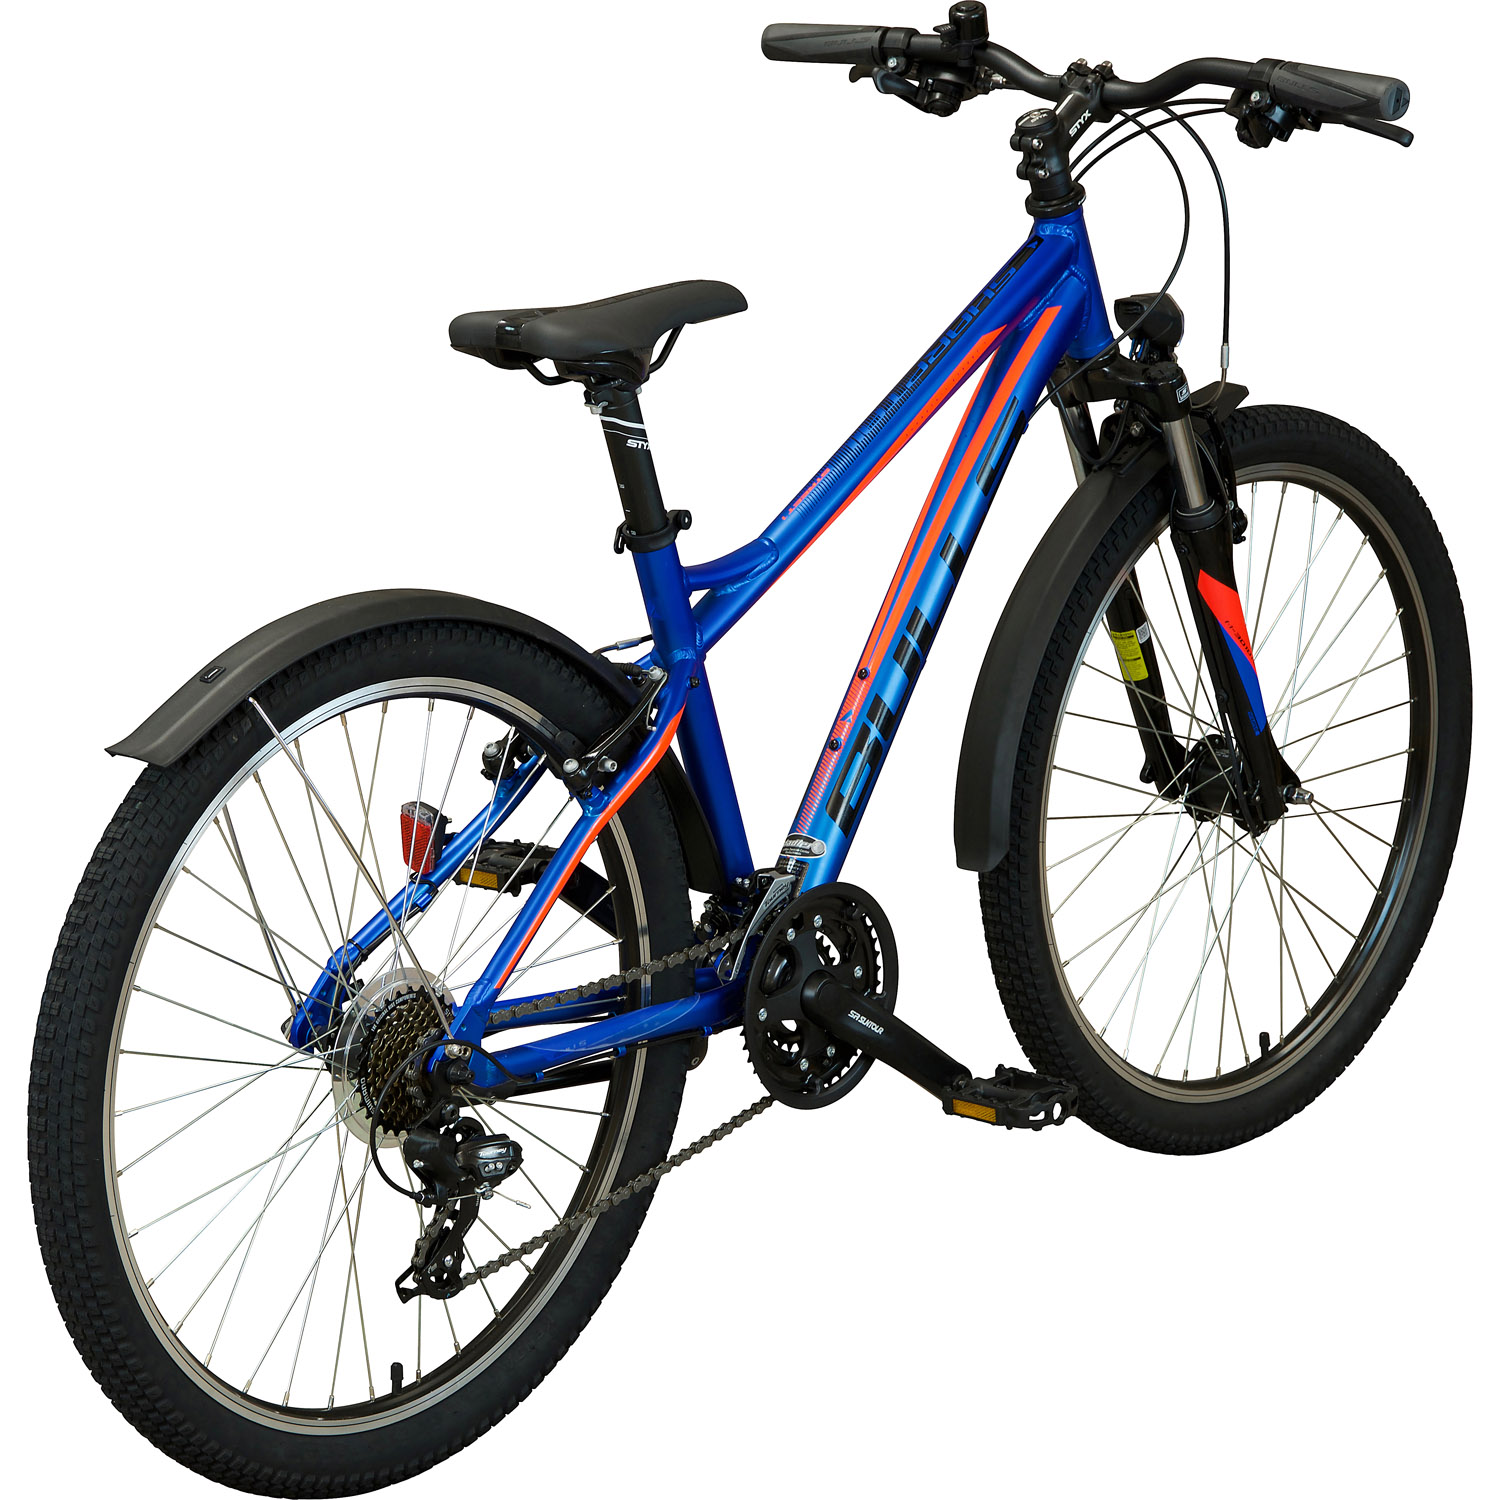 bulls sharptail street 1 mountainbike 26 zoll 41 cm. Black Bedroom Furniture Sets. Home Design Ideas